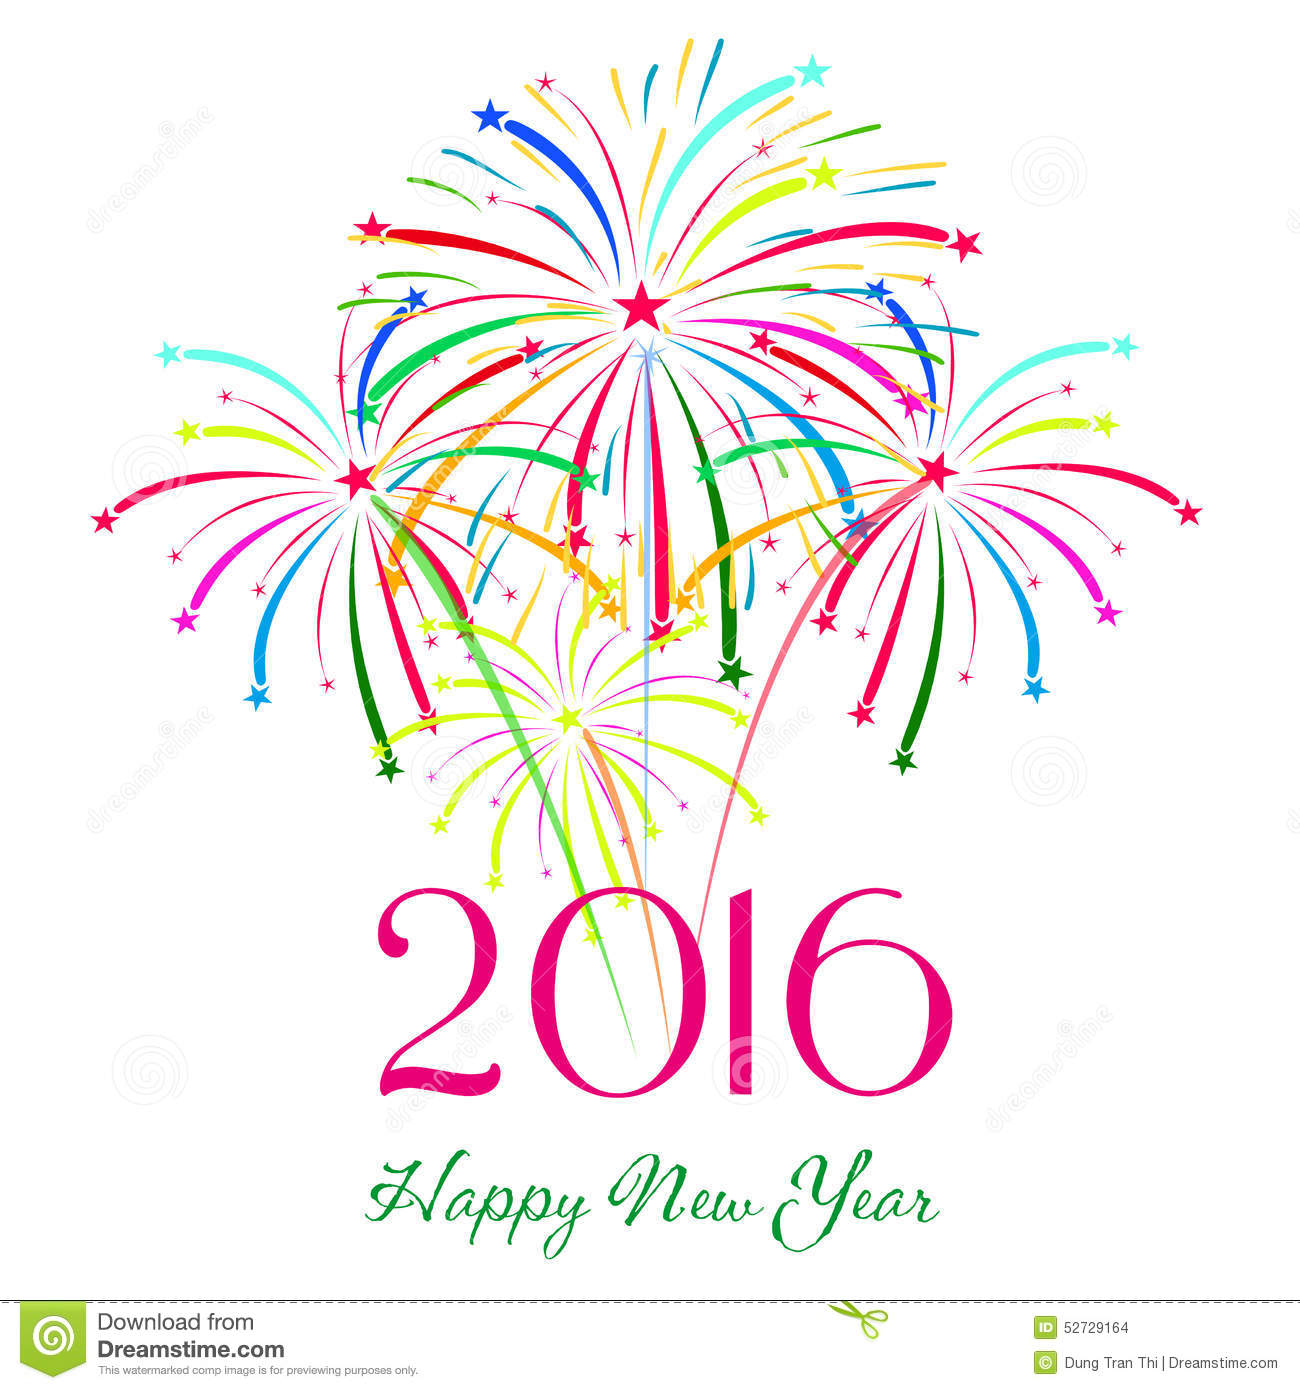 happy new year 2016 with fireworks holiday background